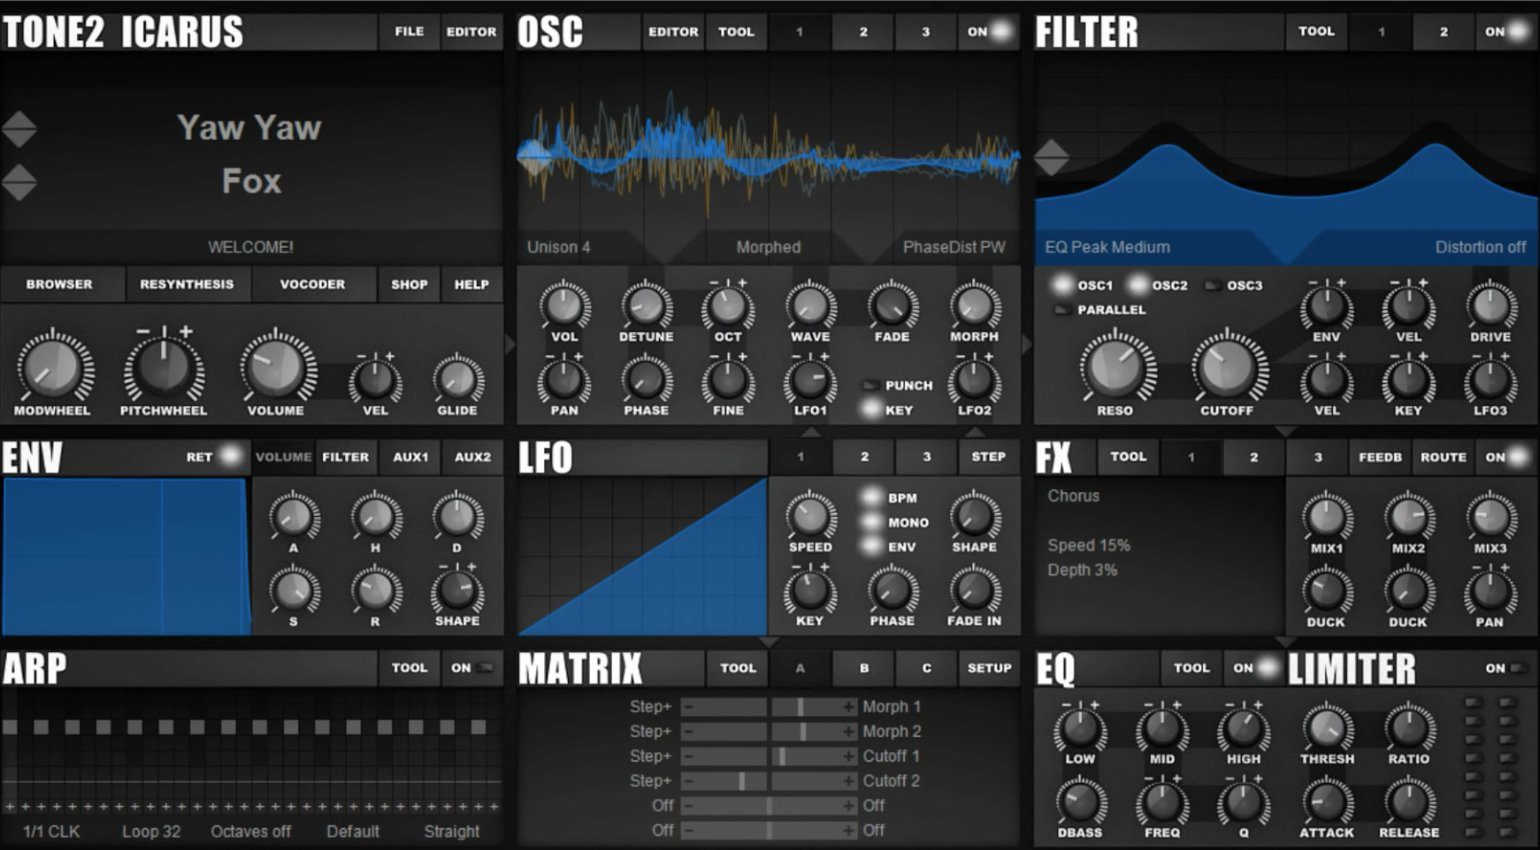 tone2 icarus free download